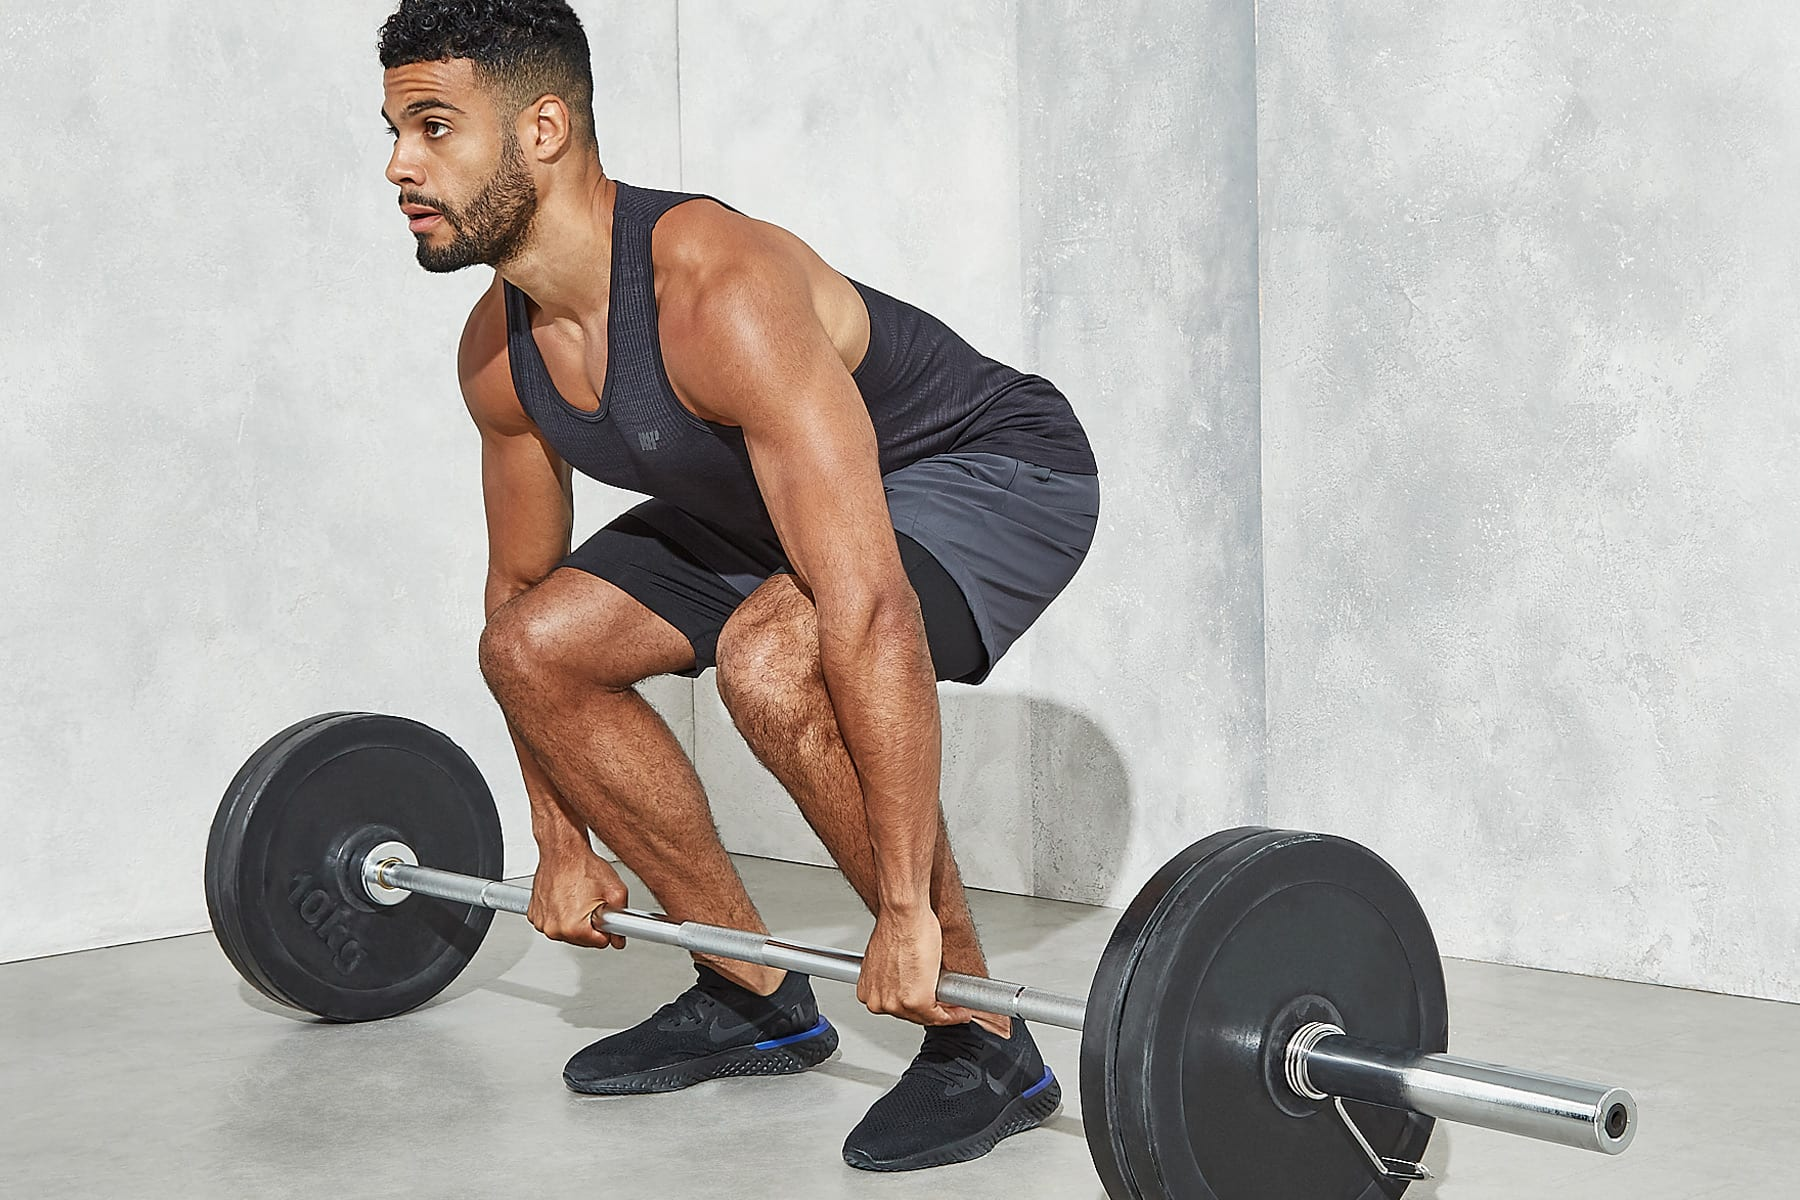 The Best Leg Workout Routine For Building Mass